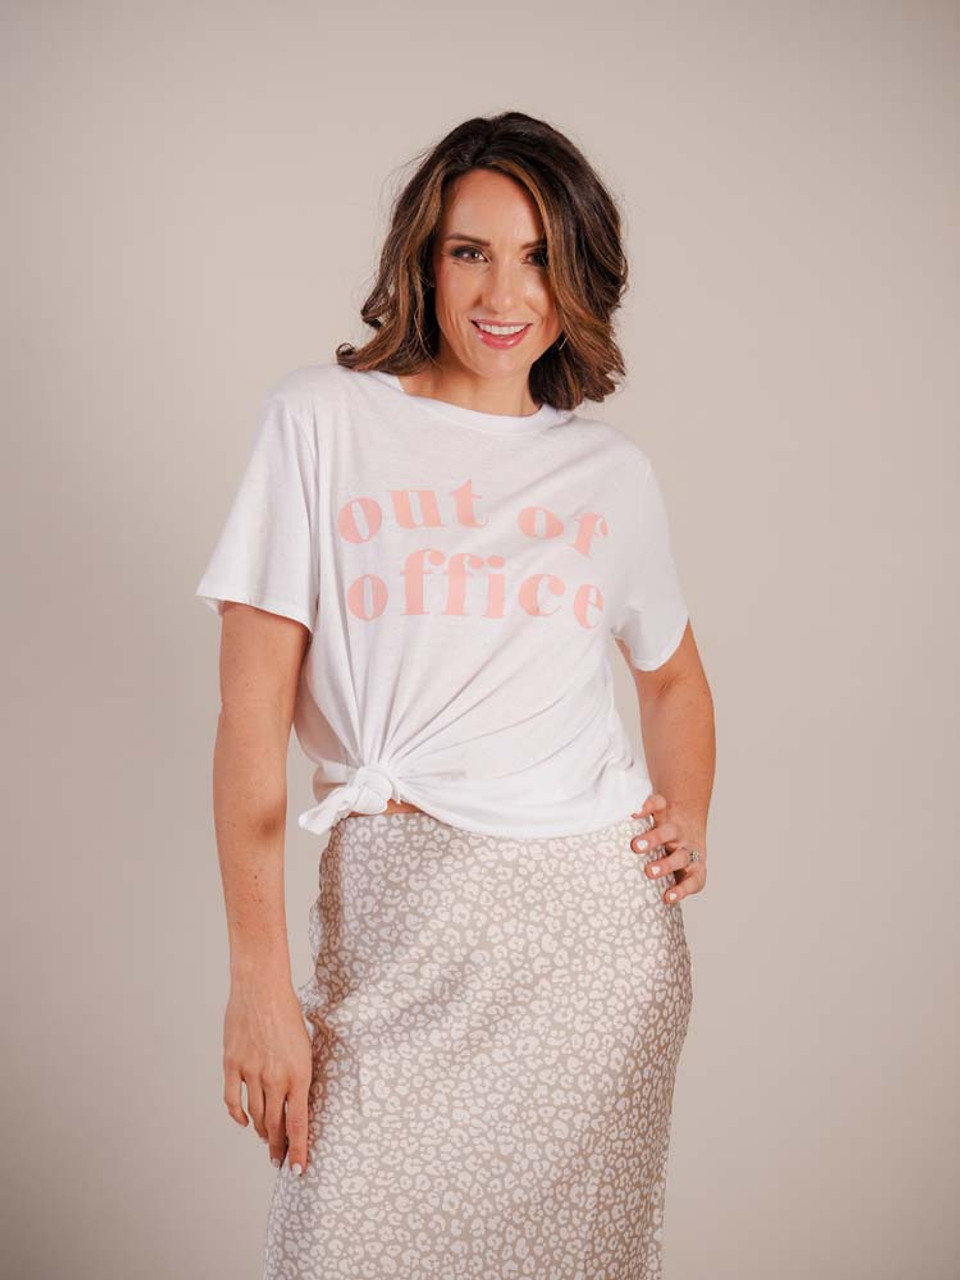 mudpie graphic tee out of office